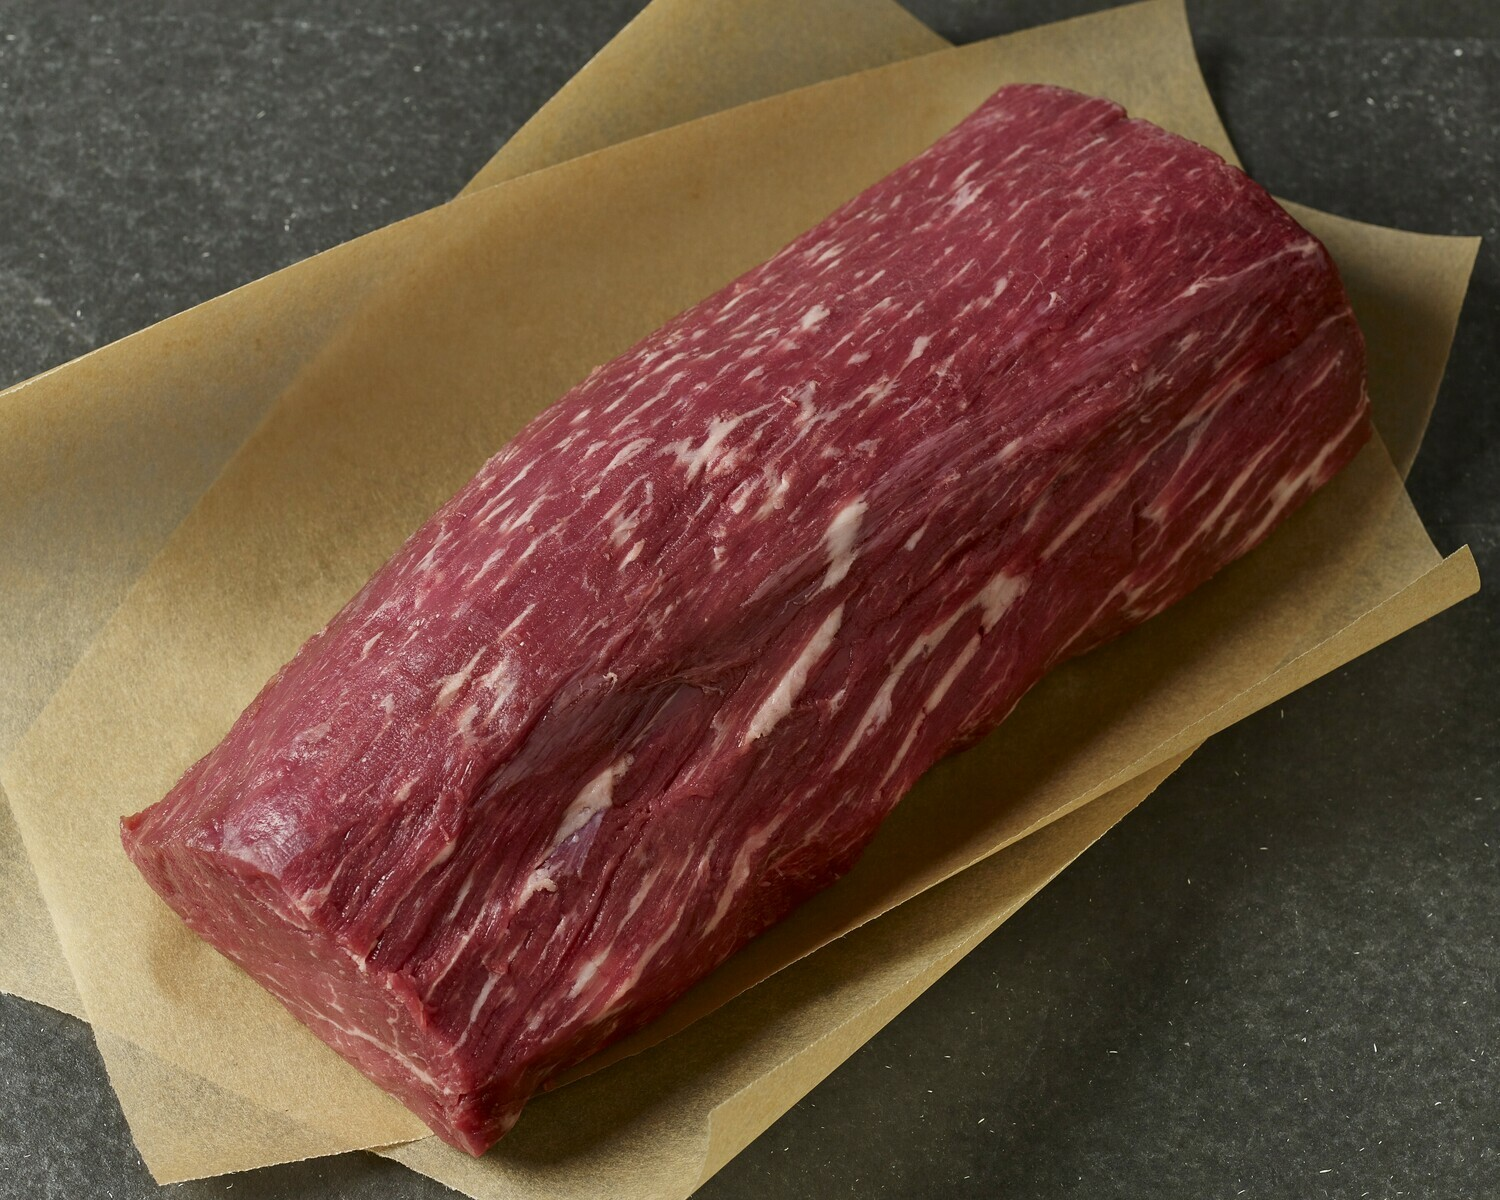 4 - 1.25 lbs Beef Tenderloin Roasts Chateaubriand